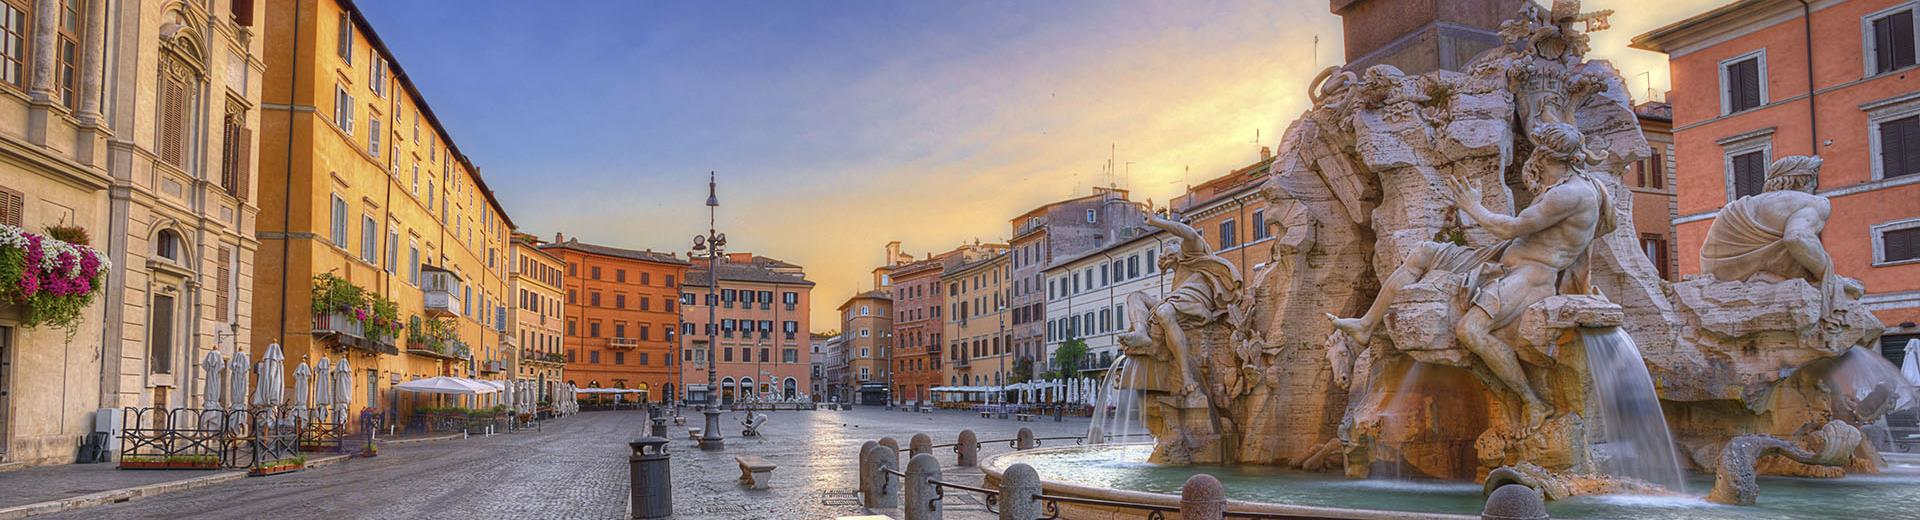 Book your 4 star hotel in Rome near the Termini station